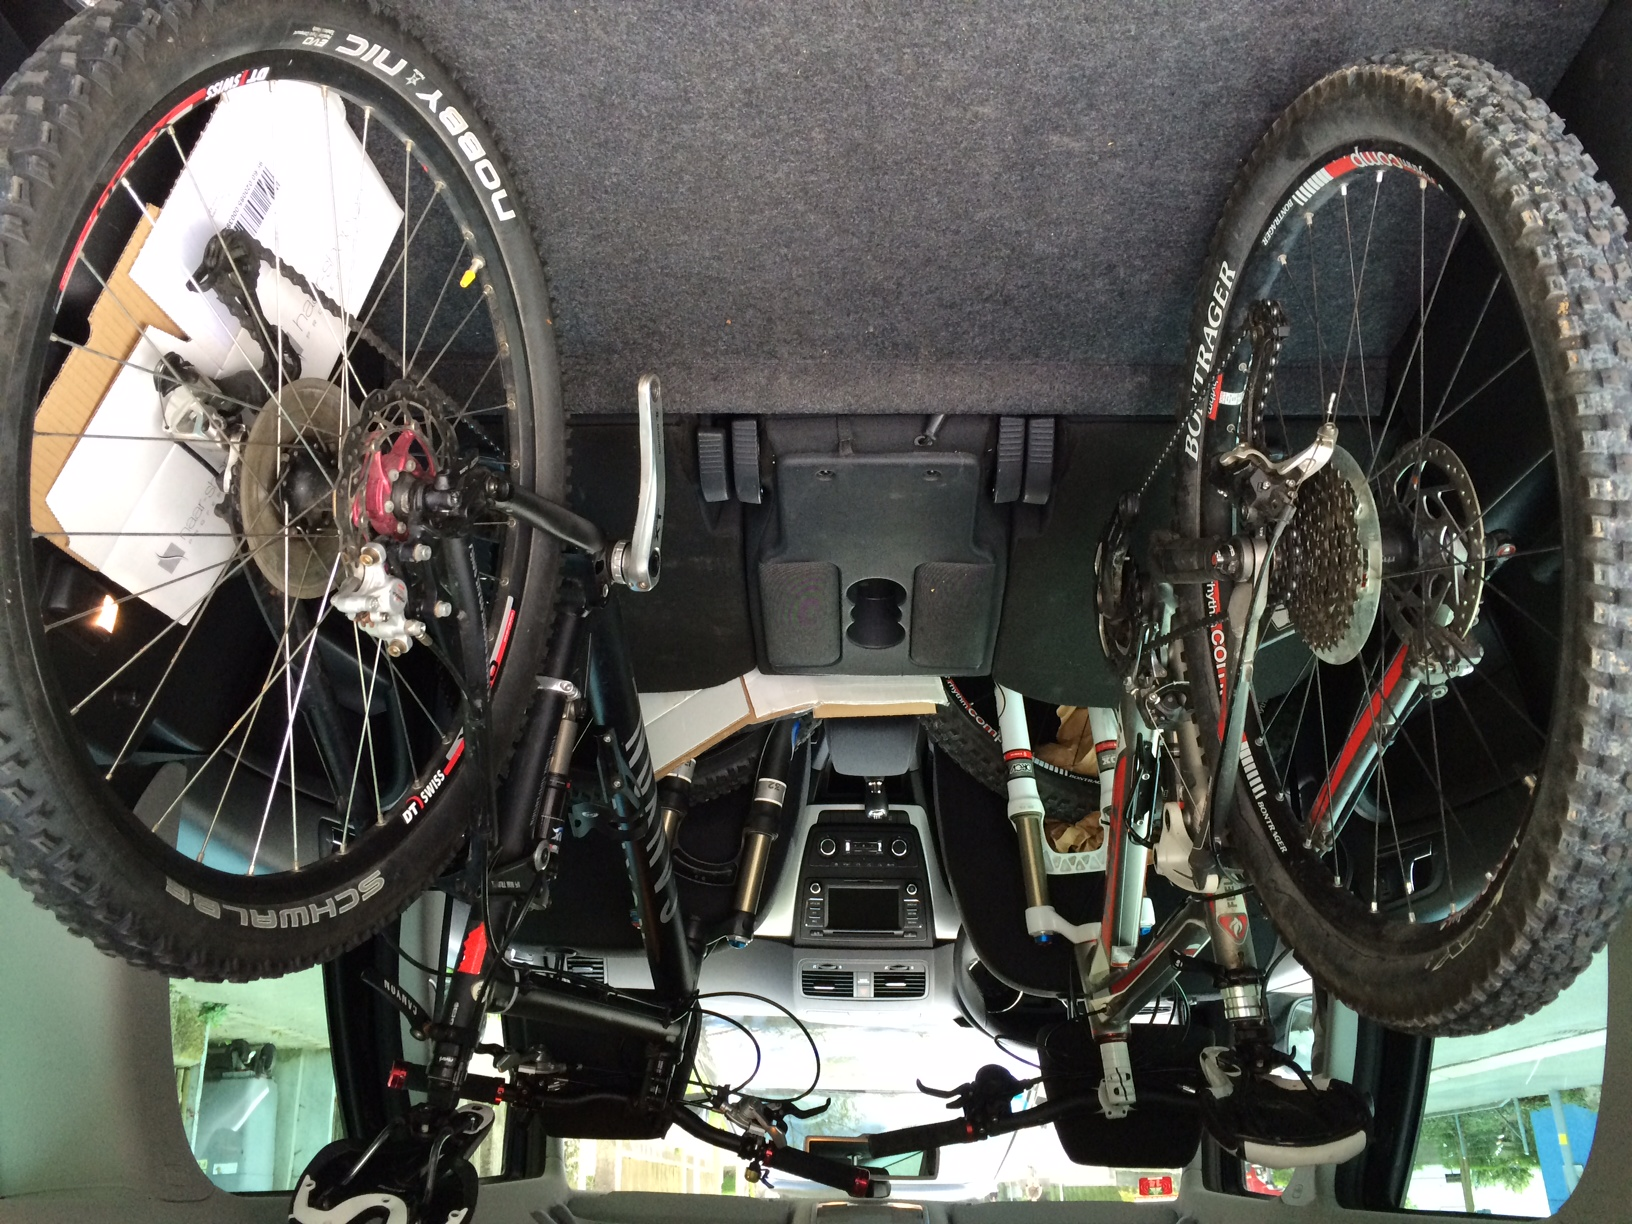 Mountain Bike Car Parking Rugelely Leisure Centre